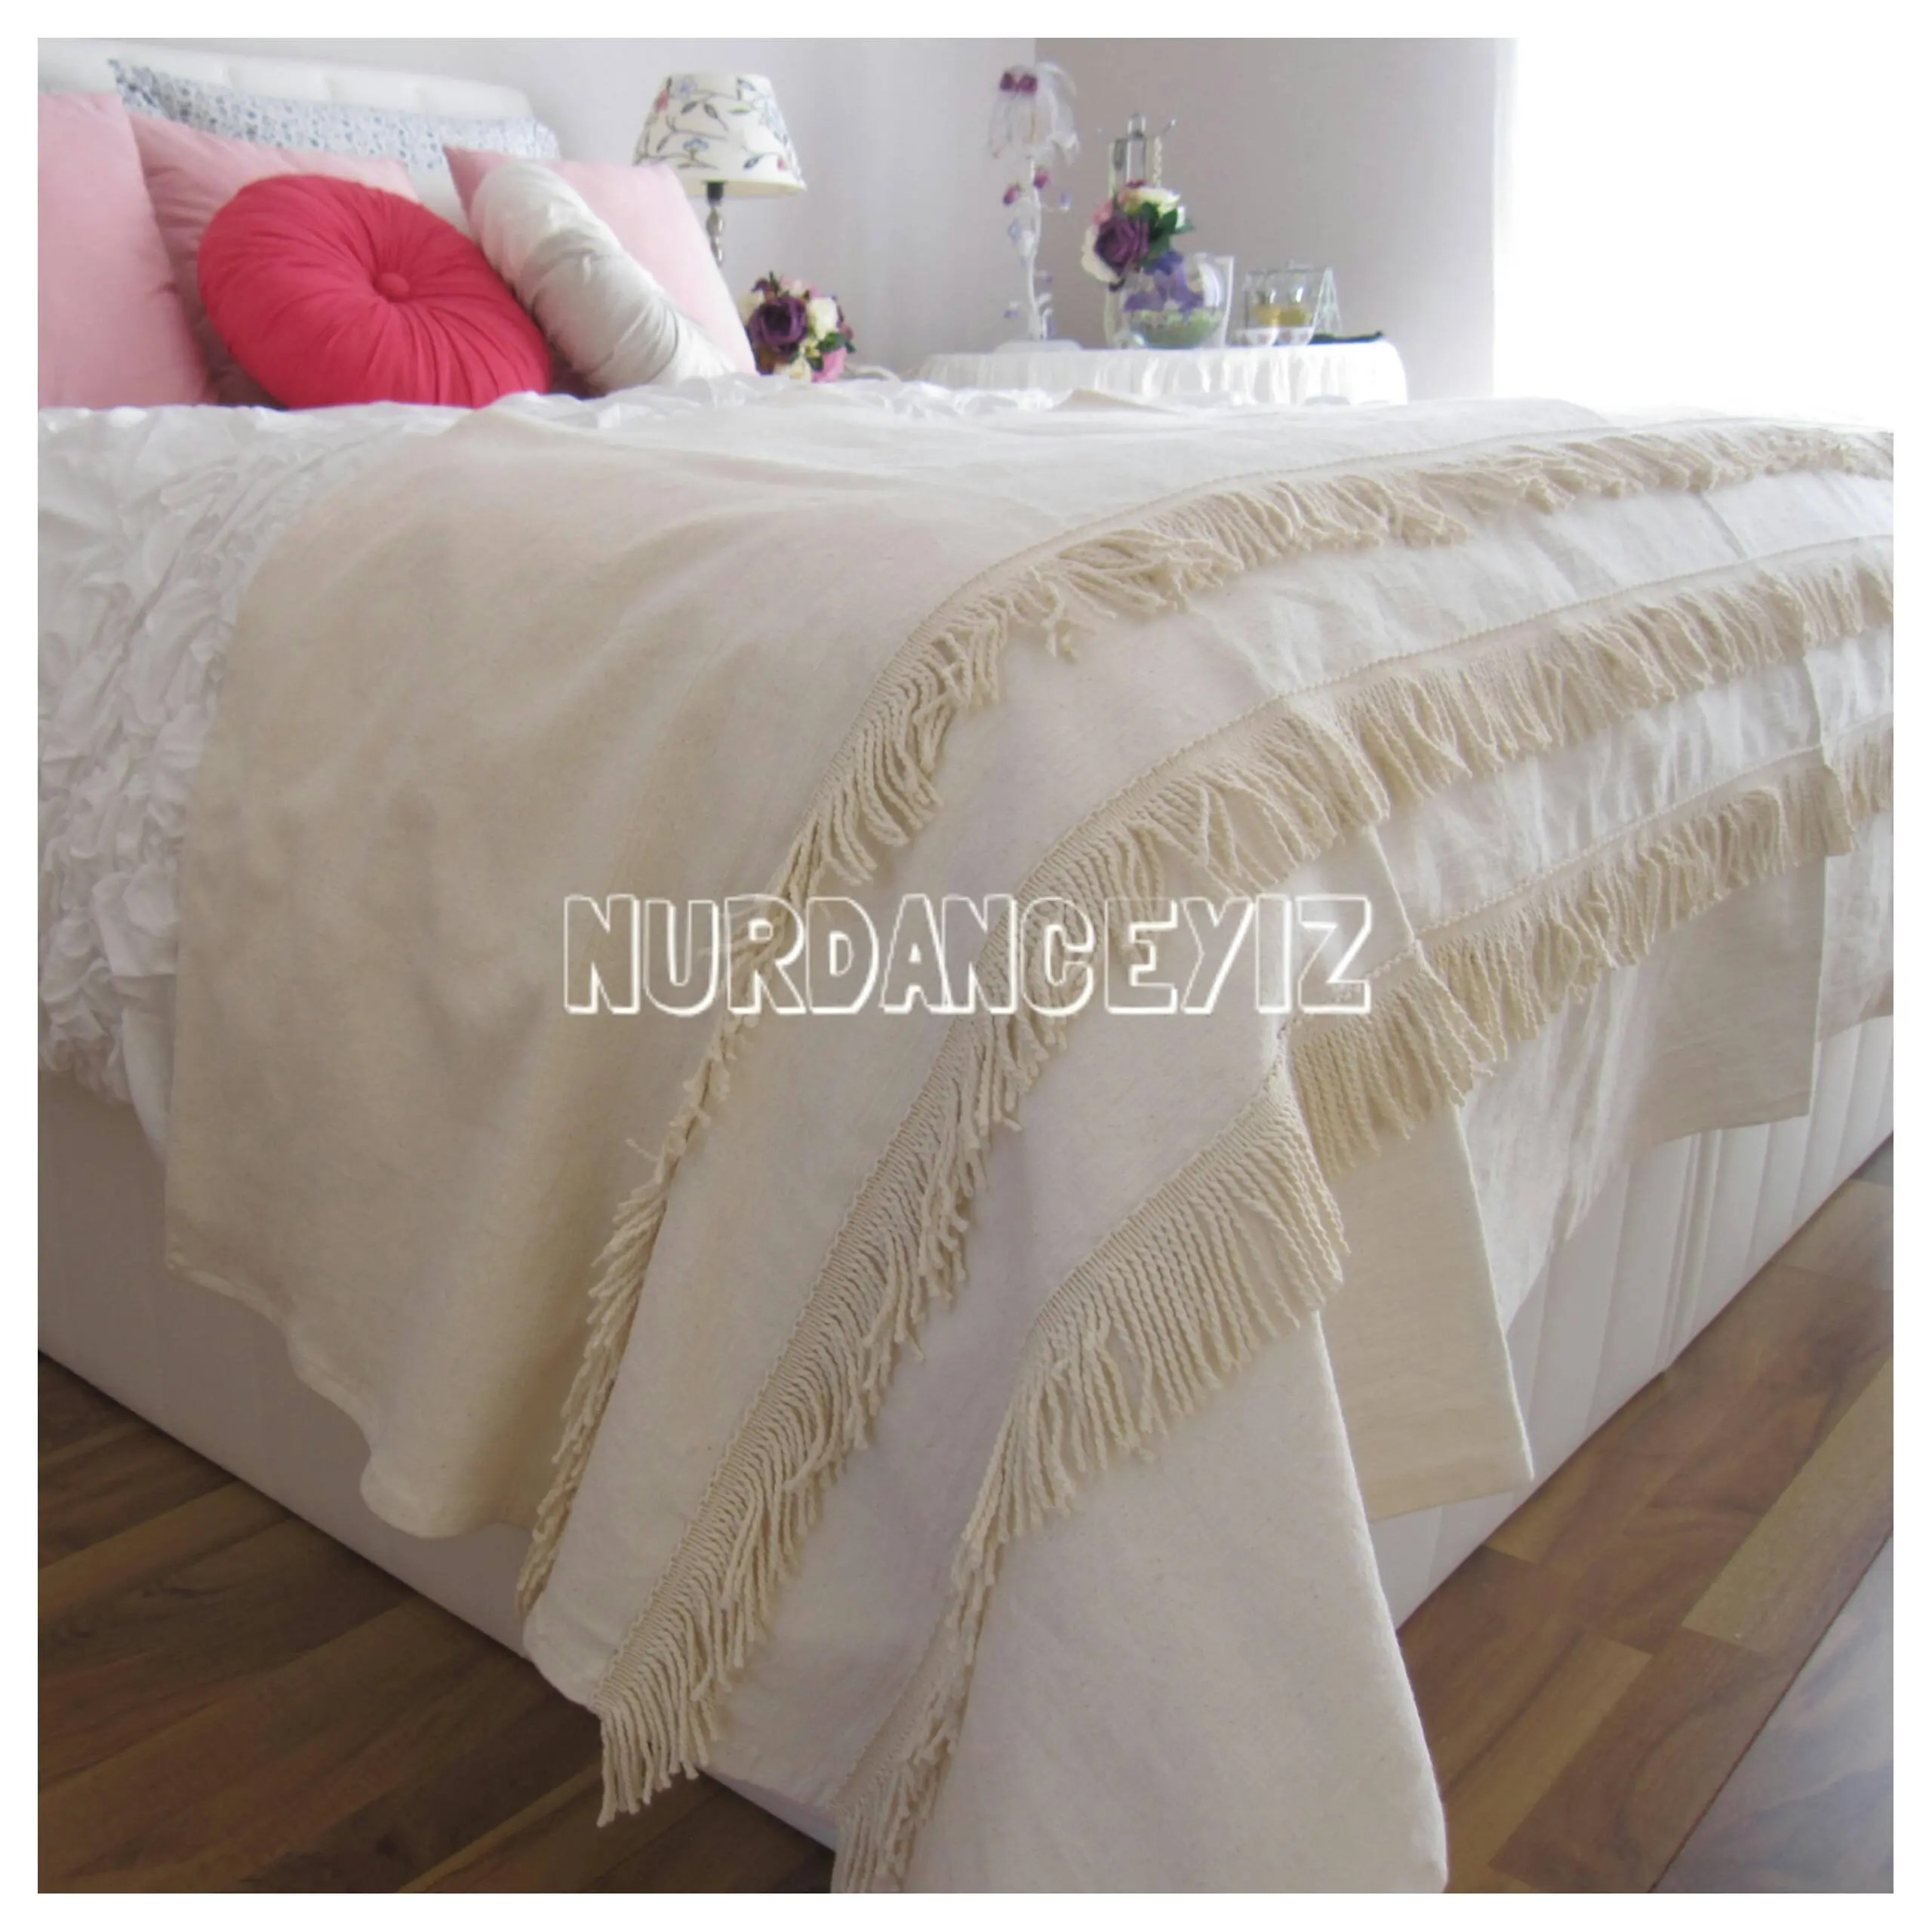 King Size Bed Throws Bohemian Fringe Bed Runner Scarf Cotton Bullion Fringe Trim Queen King Twin Shabby Chic Bedding Scarves Linen Bed Throws Country Cottage